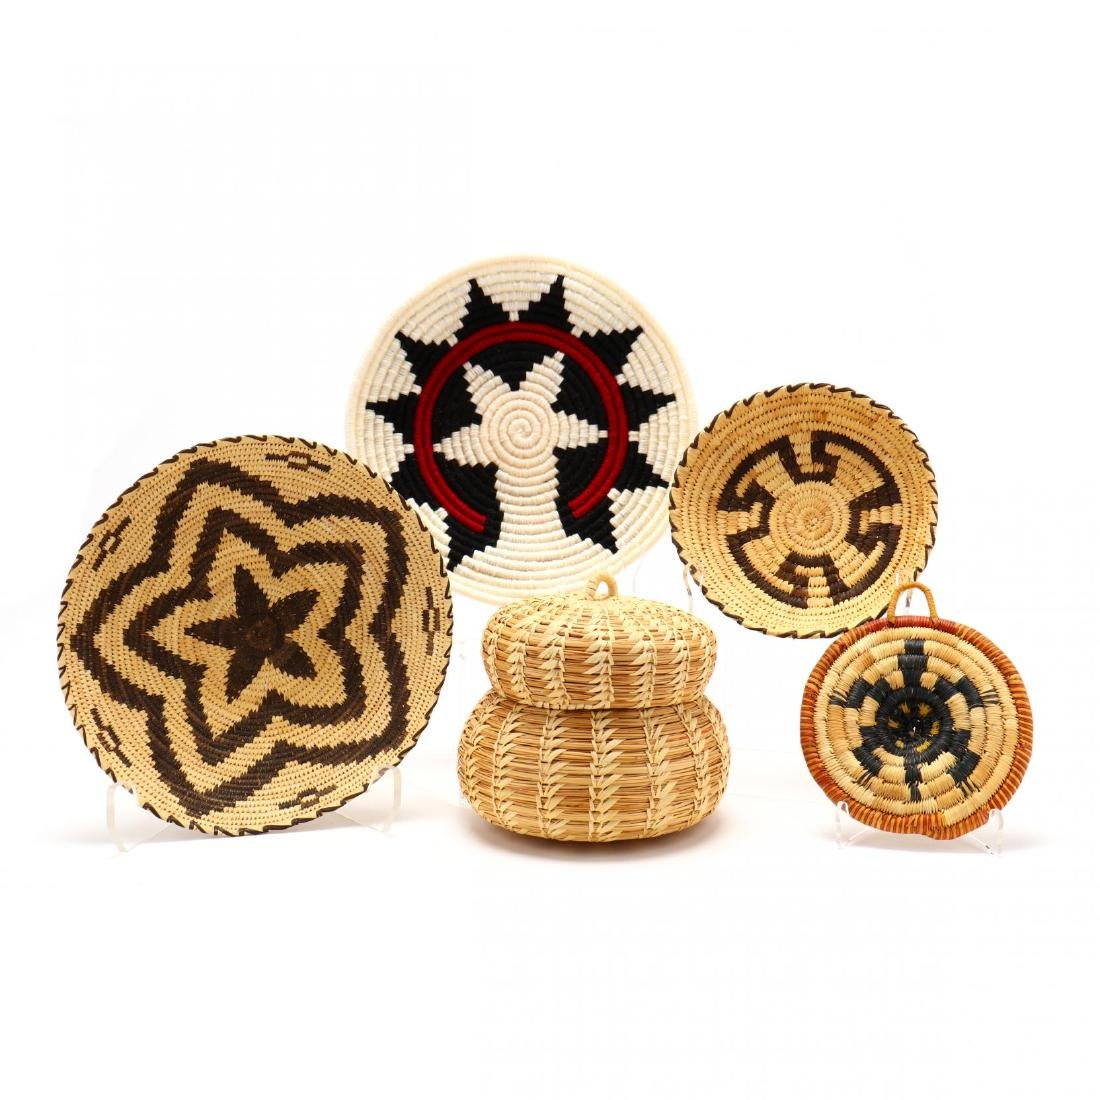 Five Native American Baskets